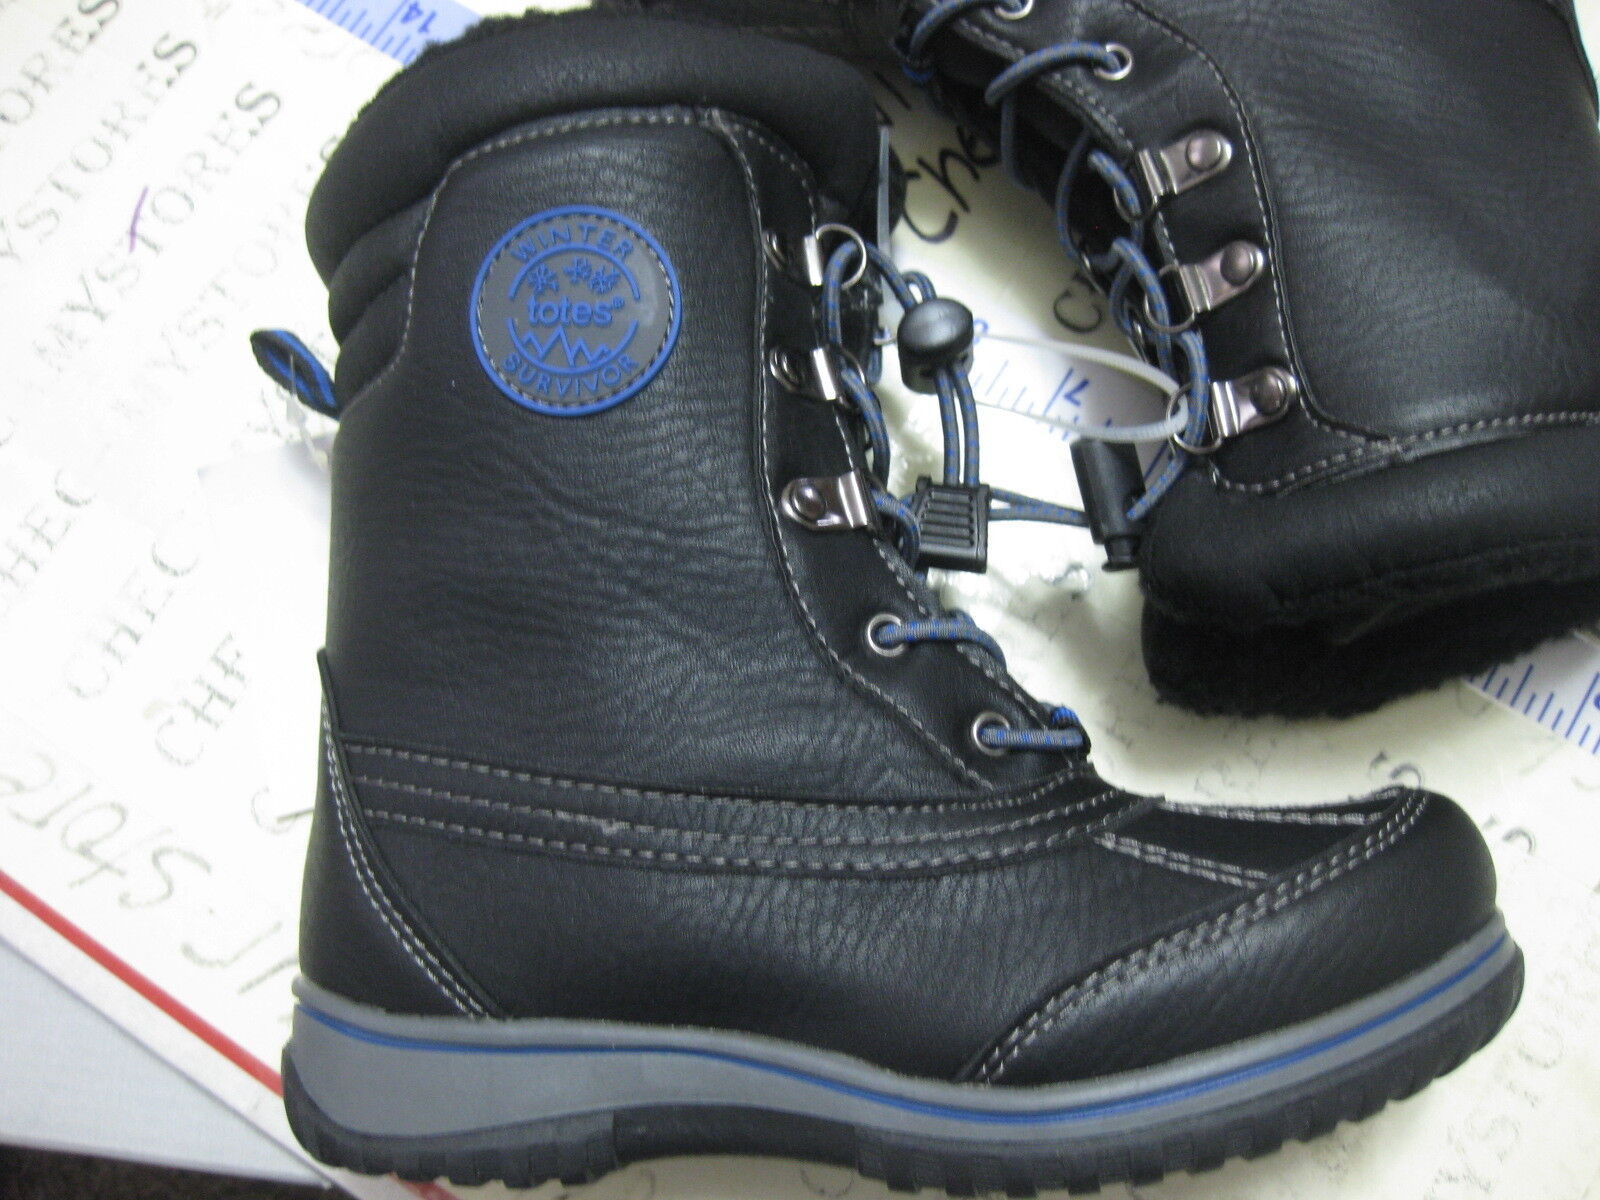 NEW  Boys Totes Kids BARRY Waterproof Boot  THERMOLITE Warm CHOOSE SIZES 1